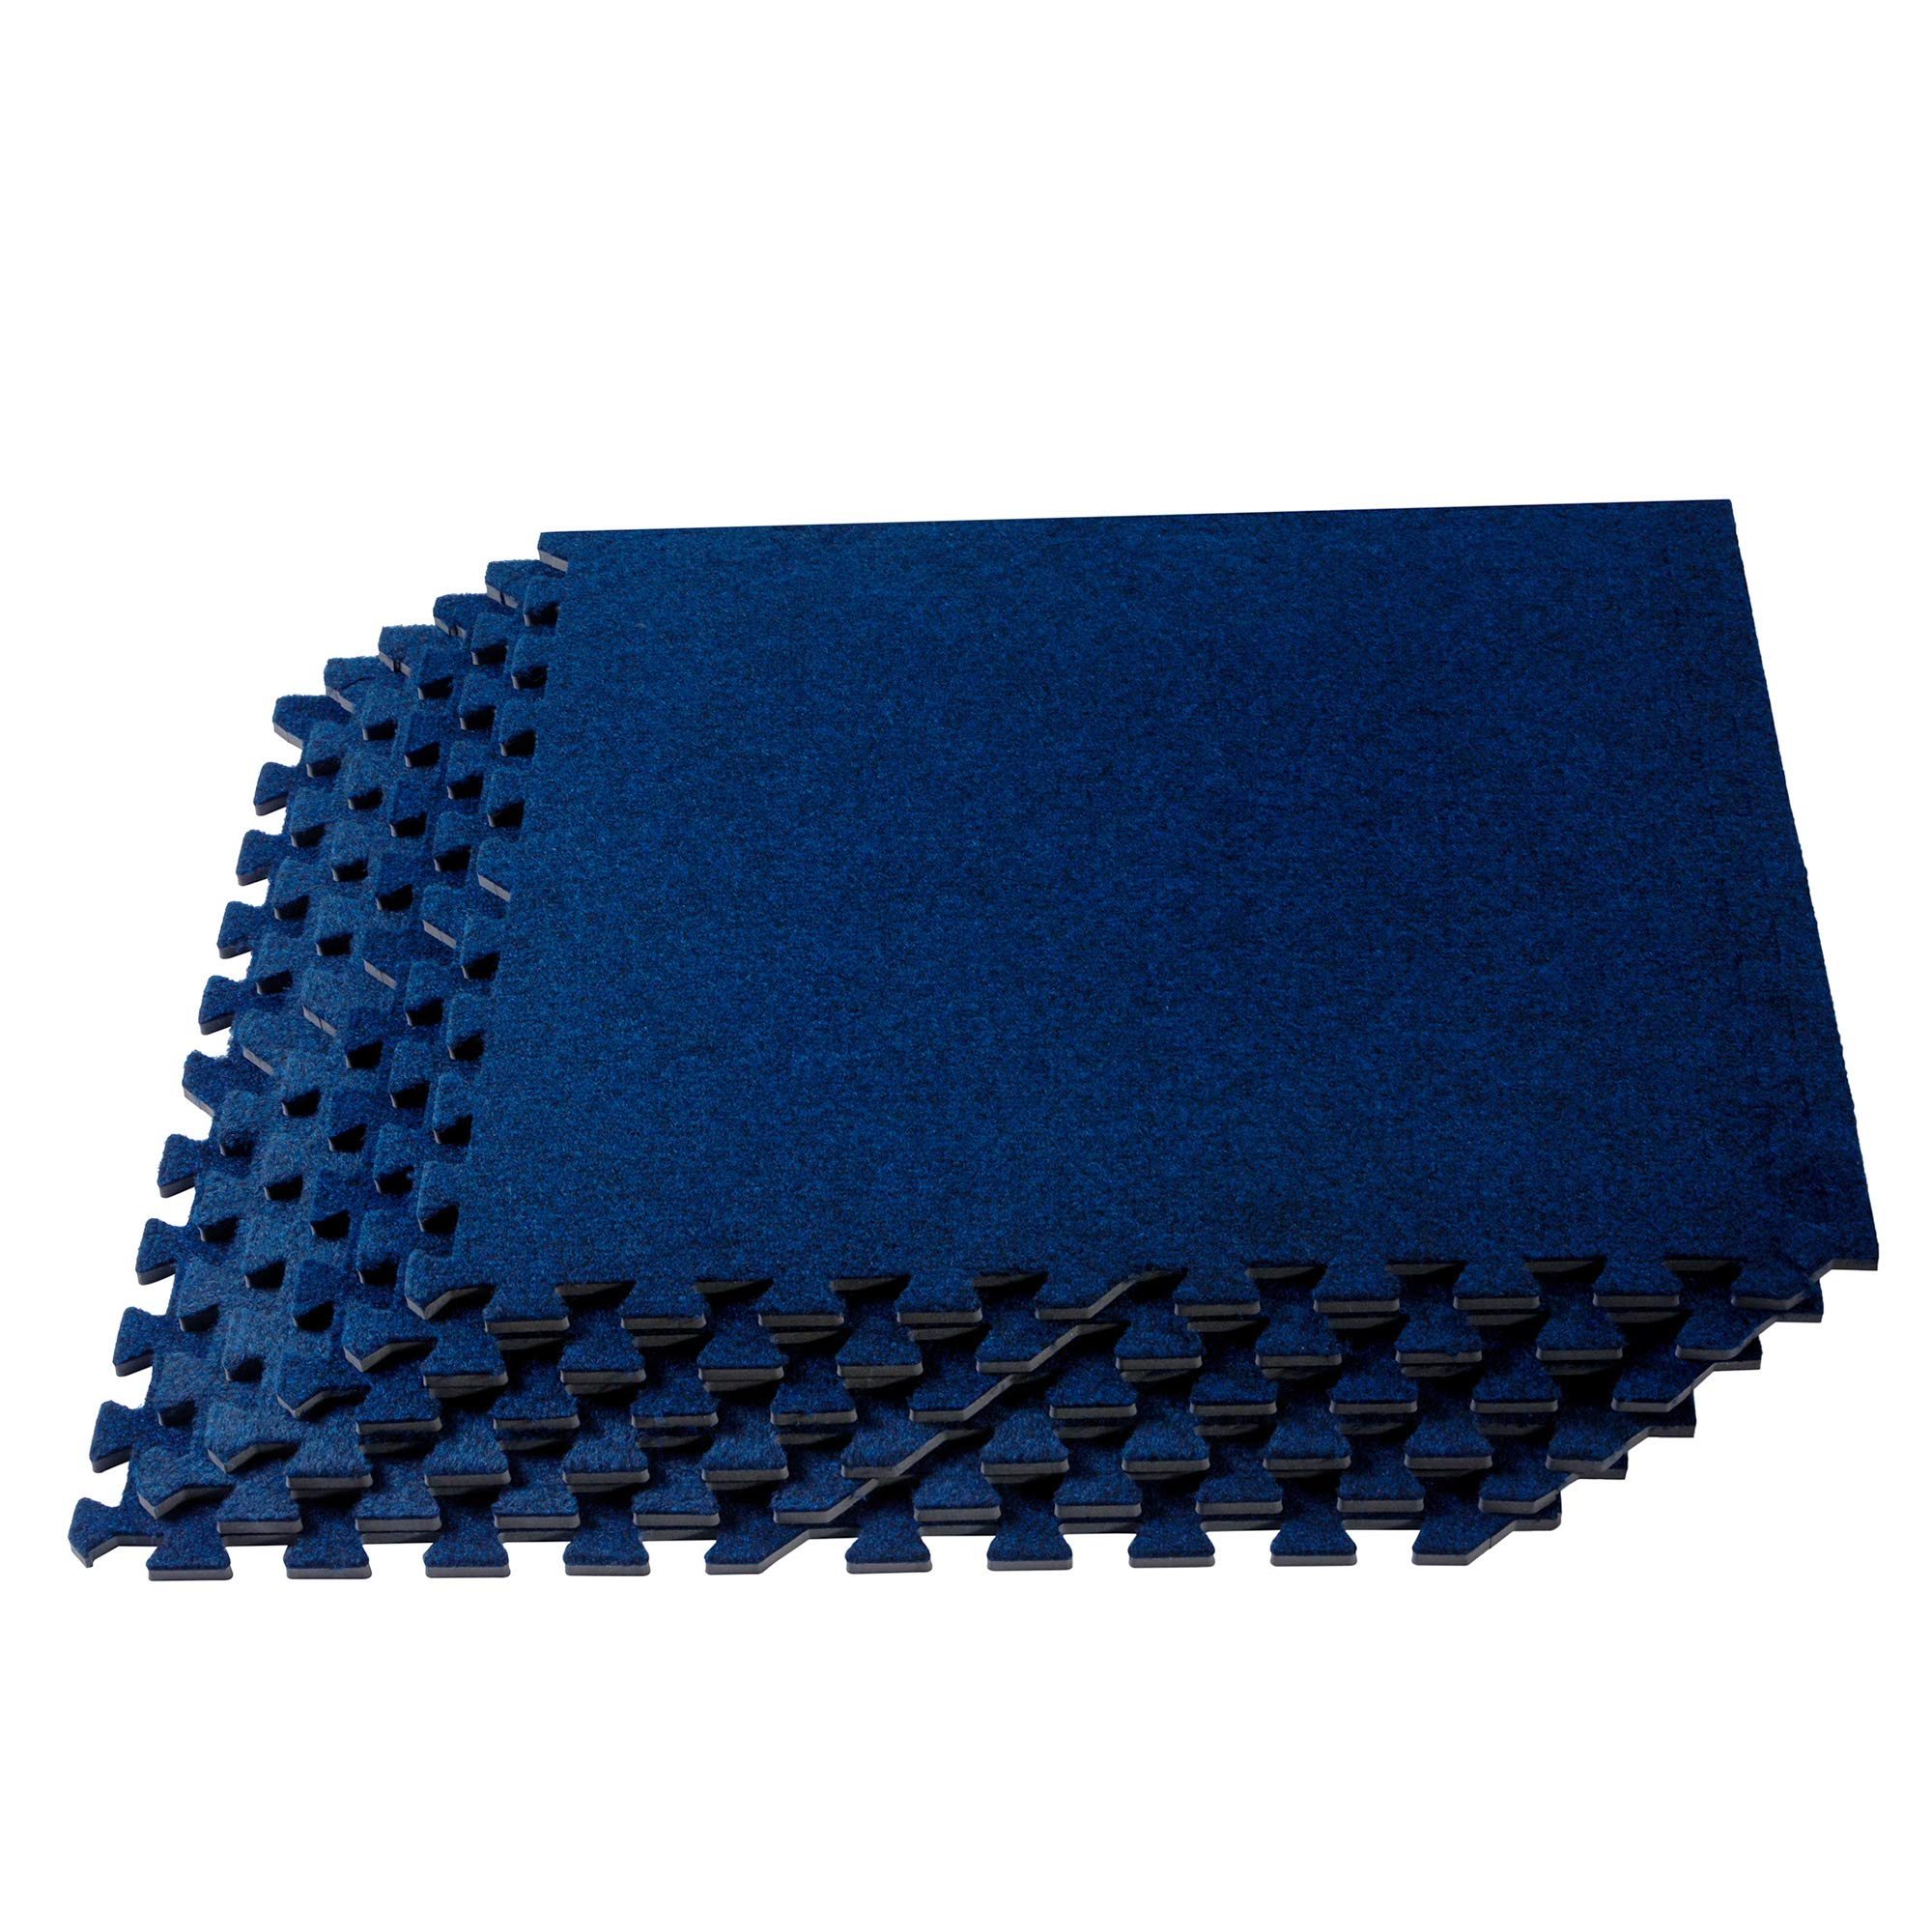 We Sell Mats 3/8 Inch Thick Premium Interlocking Foam Carpet Tiles, Extra Durable Carpet Squares, Anti-Fatigue for Home, Office, or Classroom Use, Vacuum Safe Carpet Tiles, 24 in x 24 in